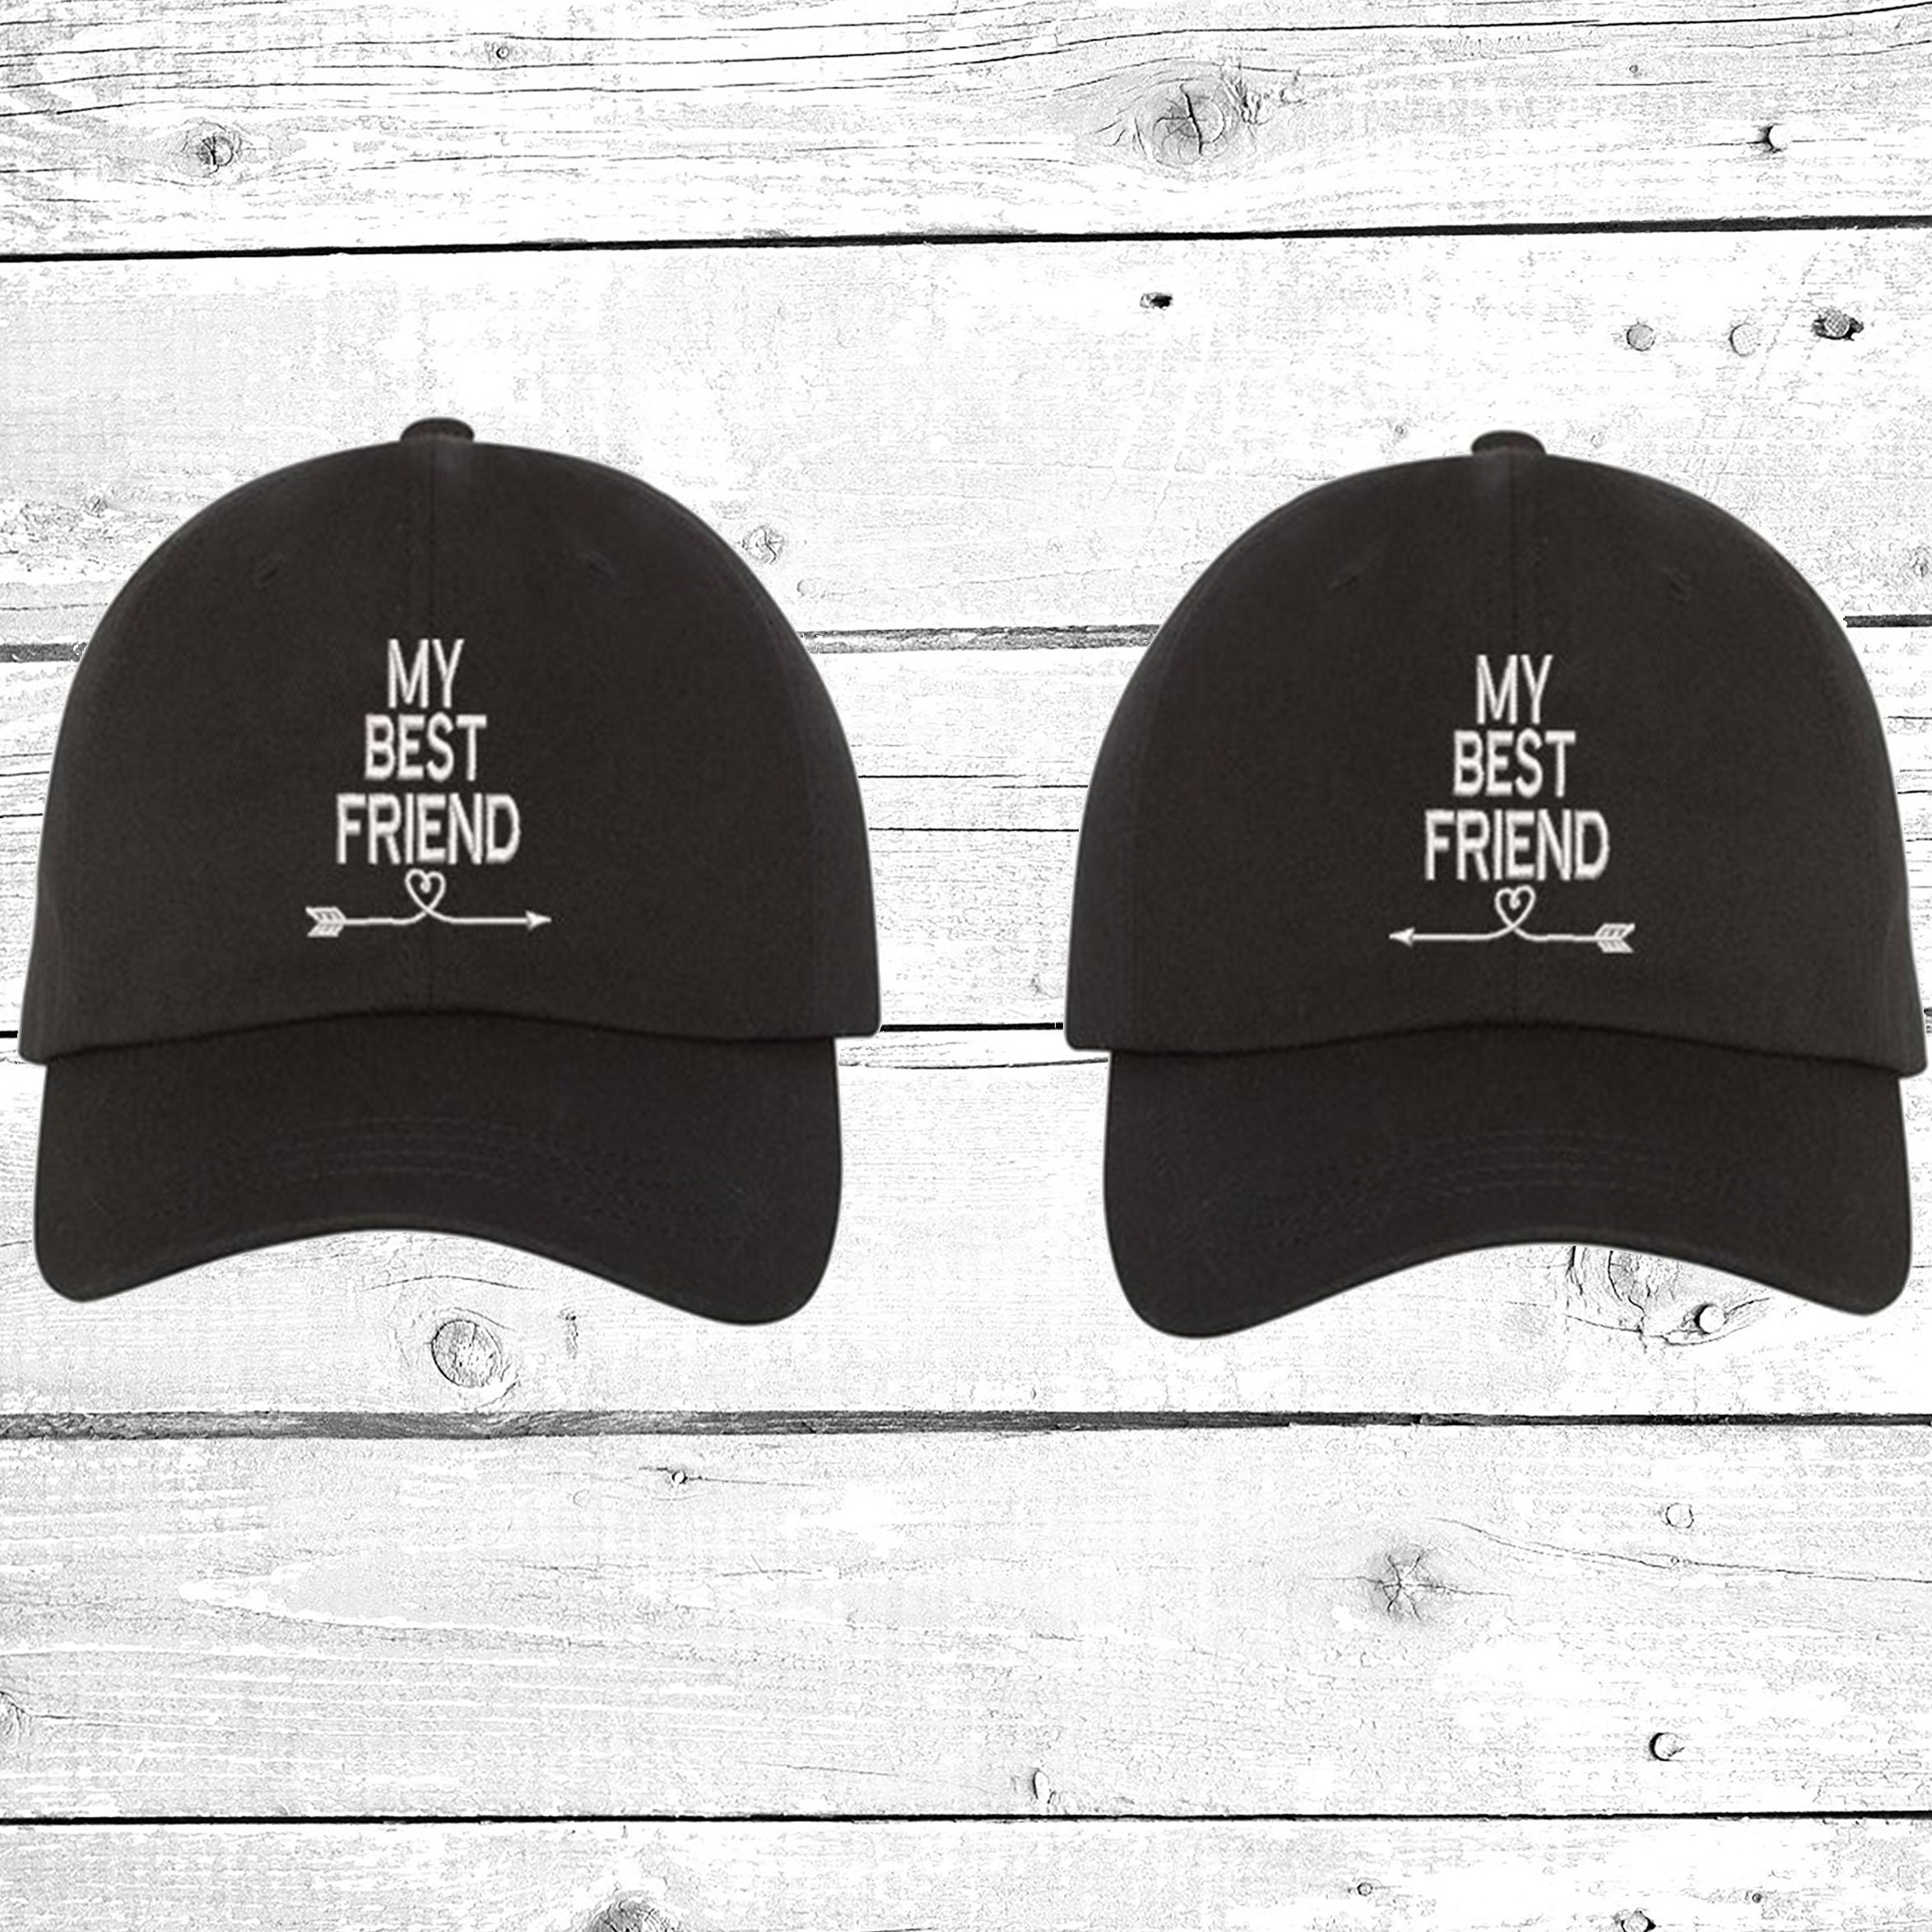 315bcfe6125 My Best Friend Dad Hats Baseball Cap Gifts for Best Friends Couples ...